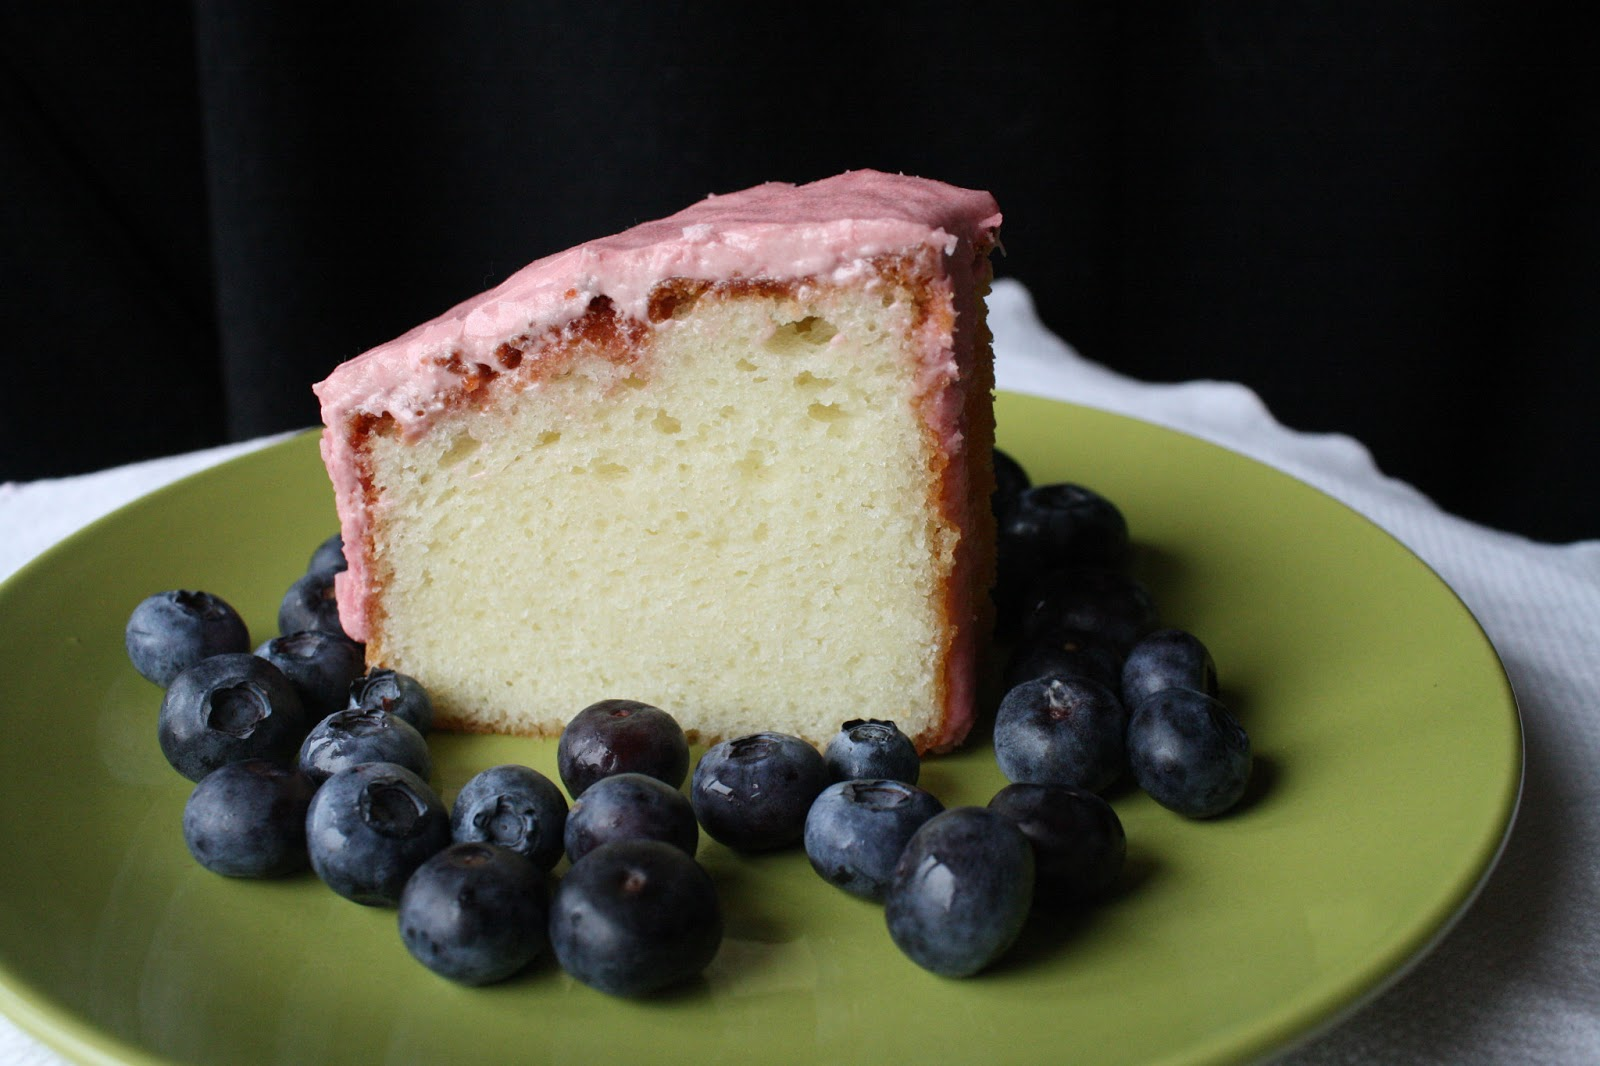 ... Cooking: Adapting a Gluten-free Yellow Cake Mix for a Non-Dairy diet